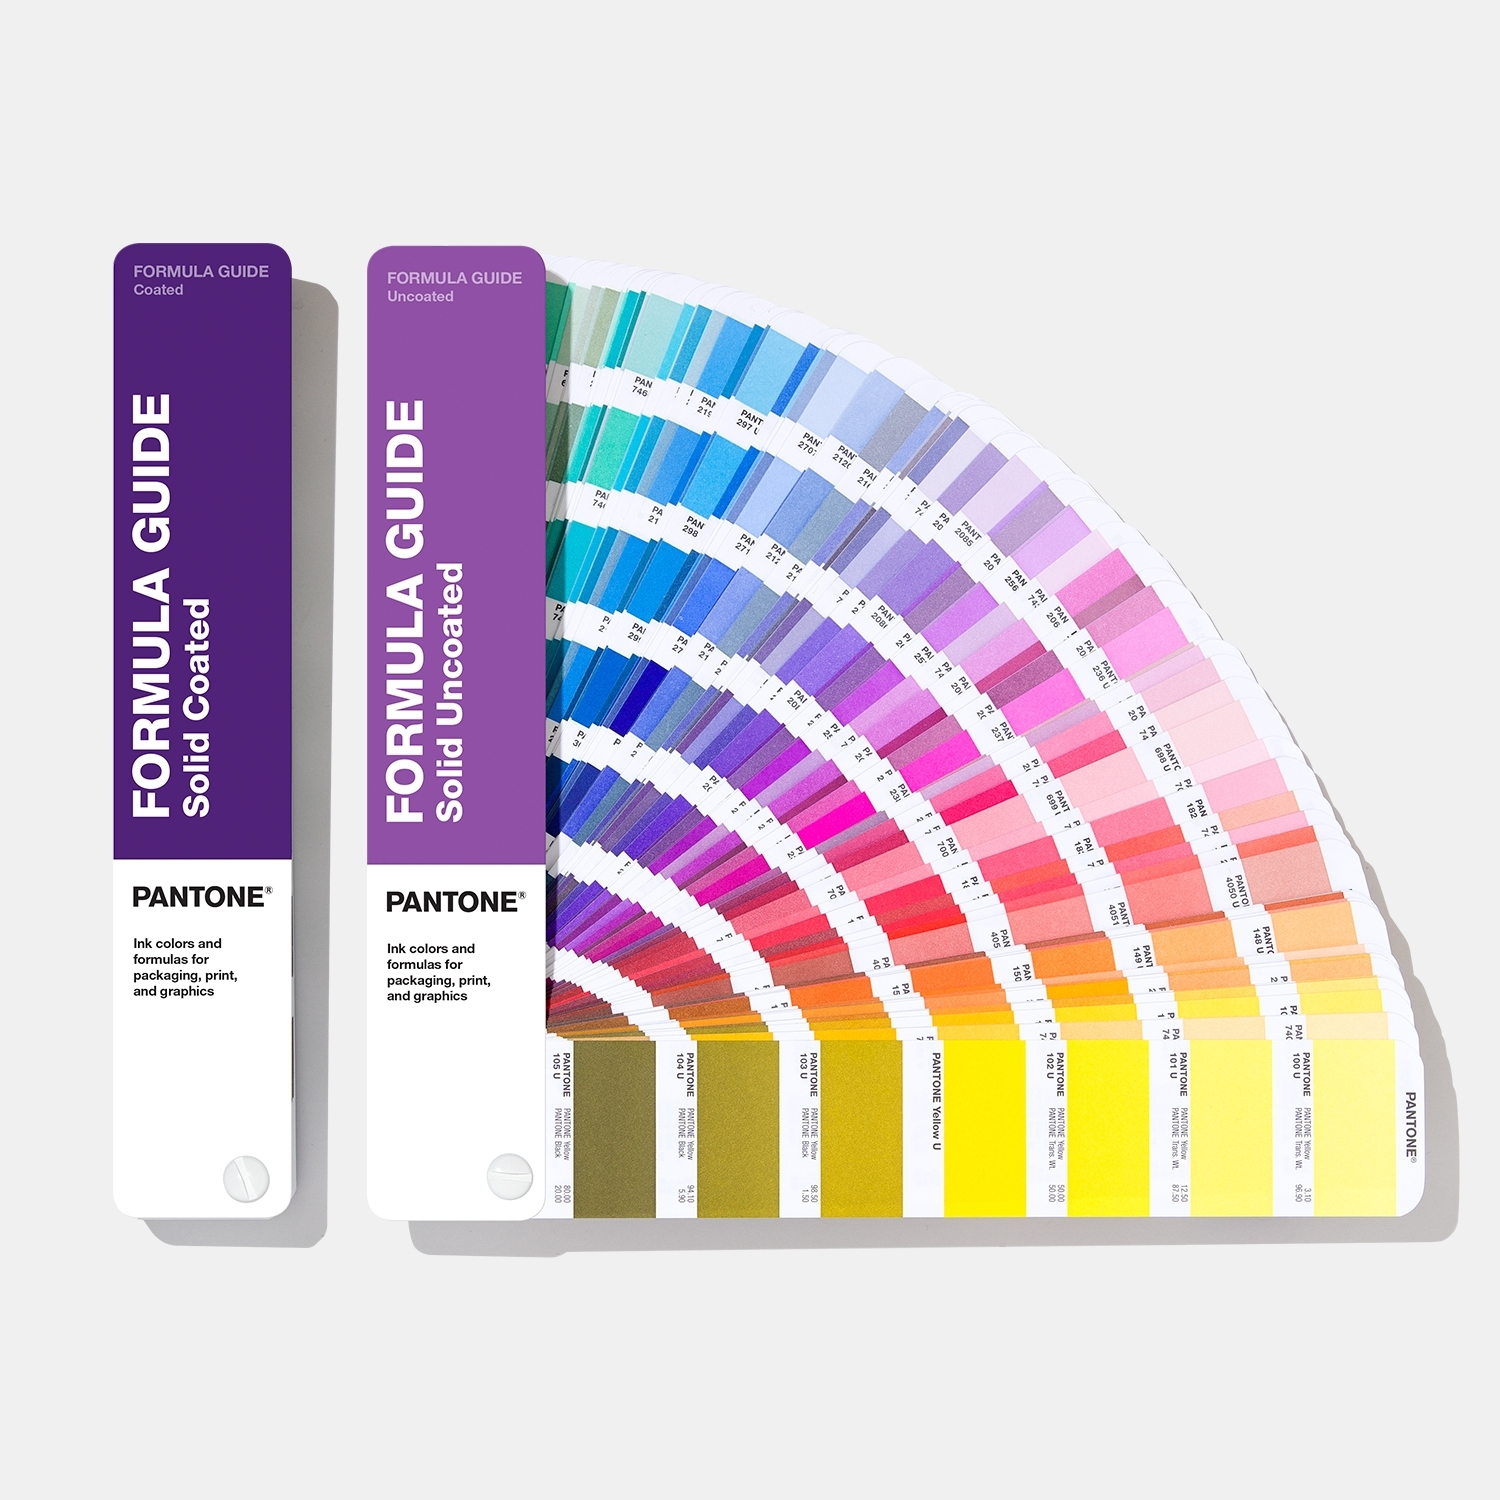 Pantone Formula Guide | Coated & Uncoated Visualize and communicate color for graphics and print - View 1